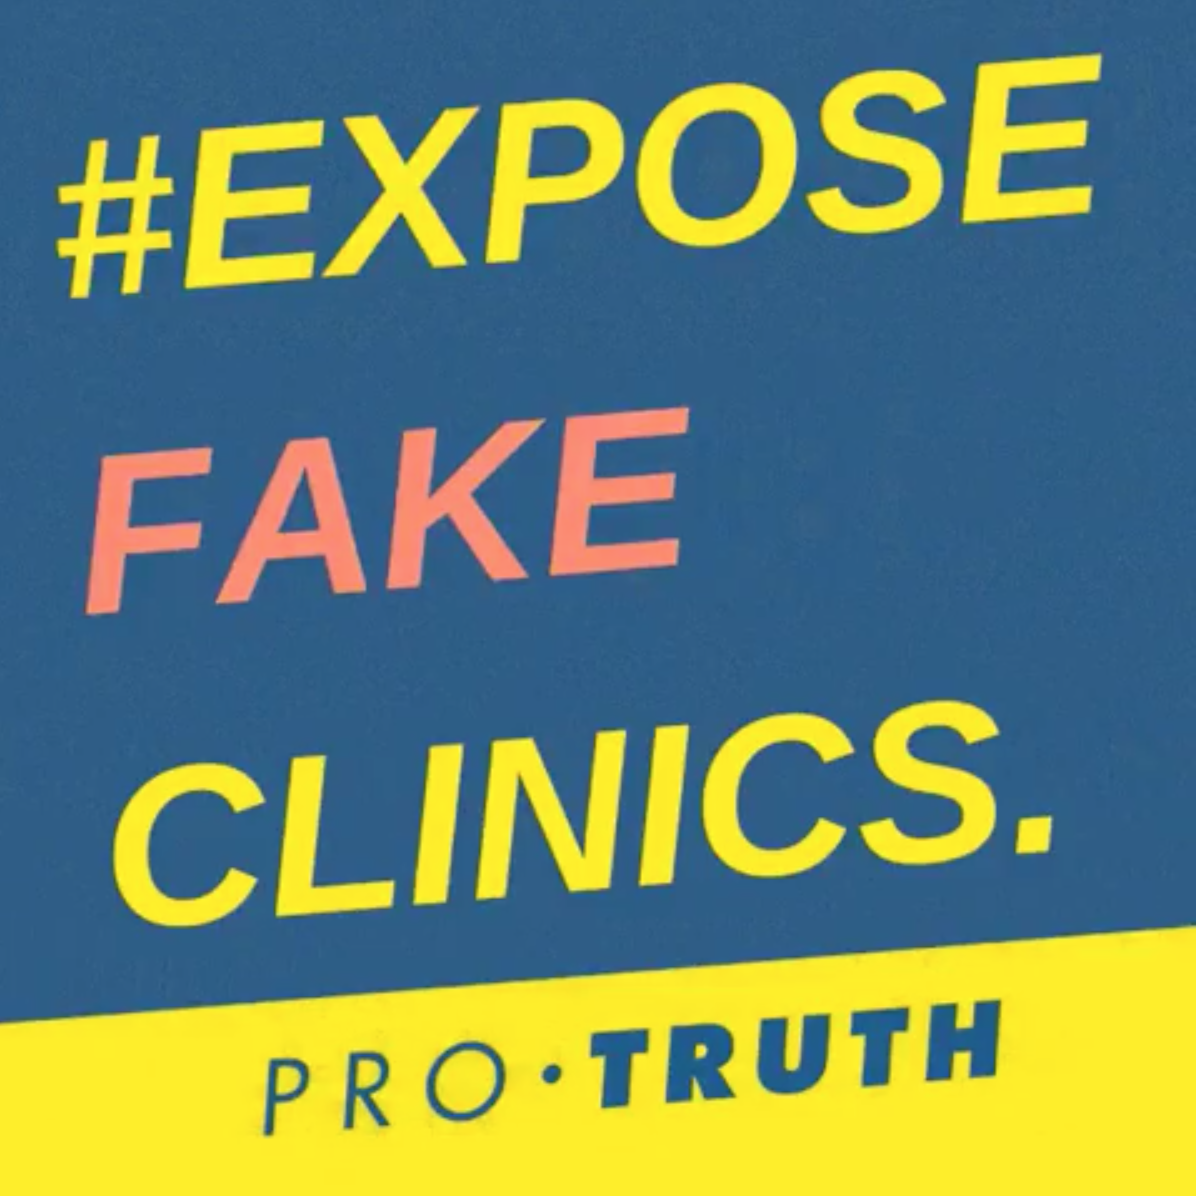 WHARR is a member of the Pro-Truth coalition. Learn more: protruthny.org